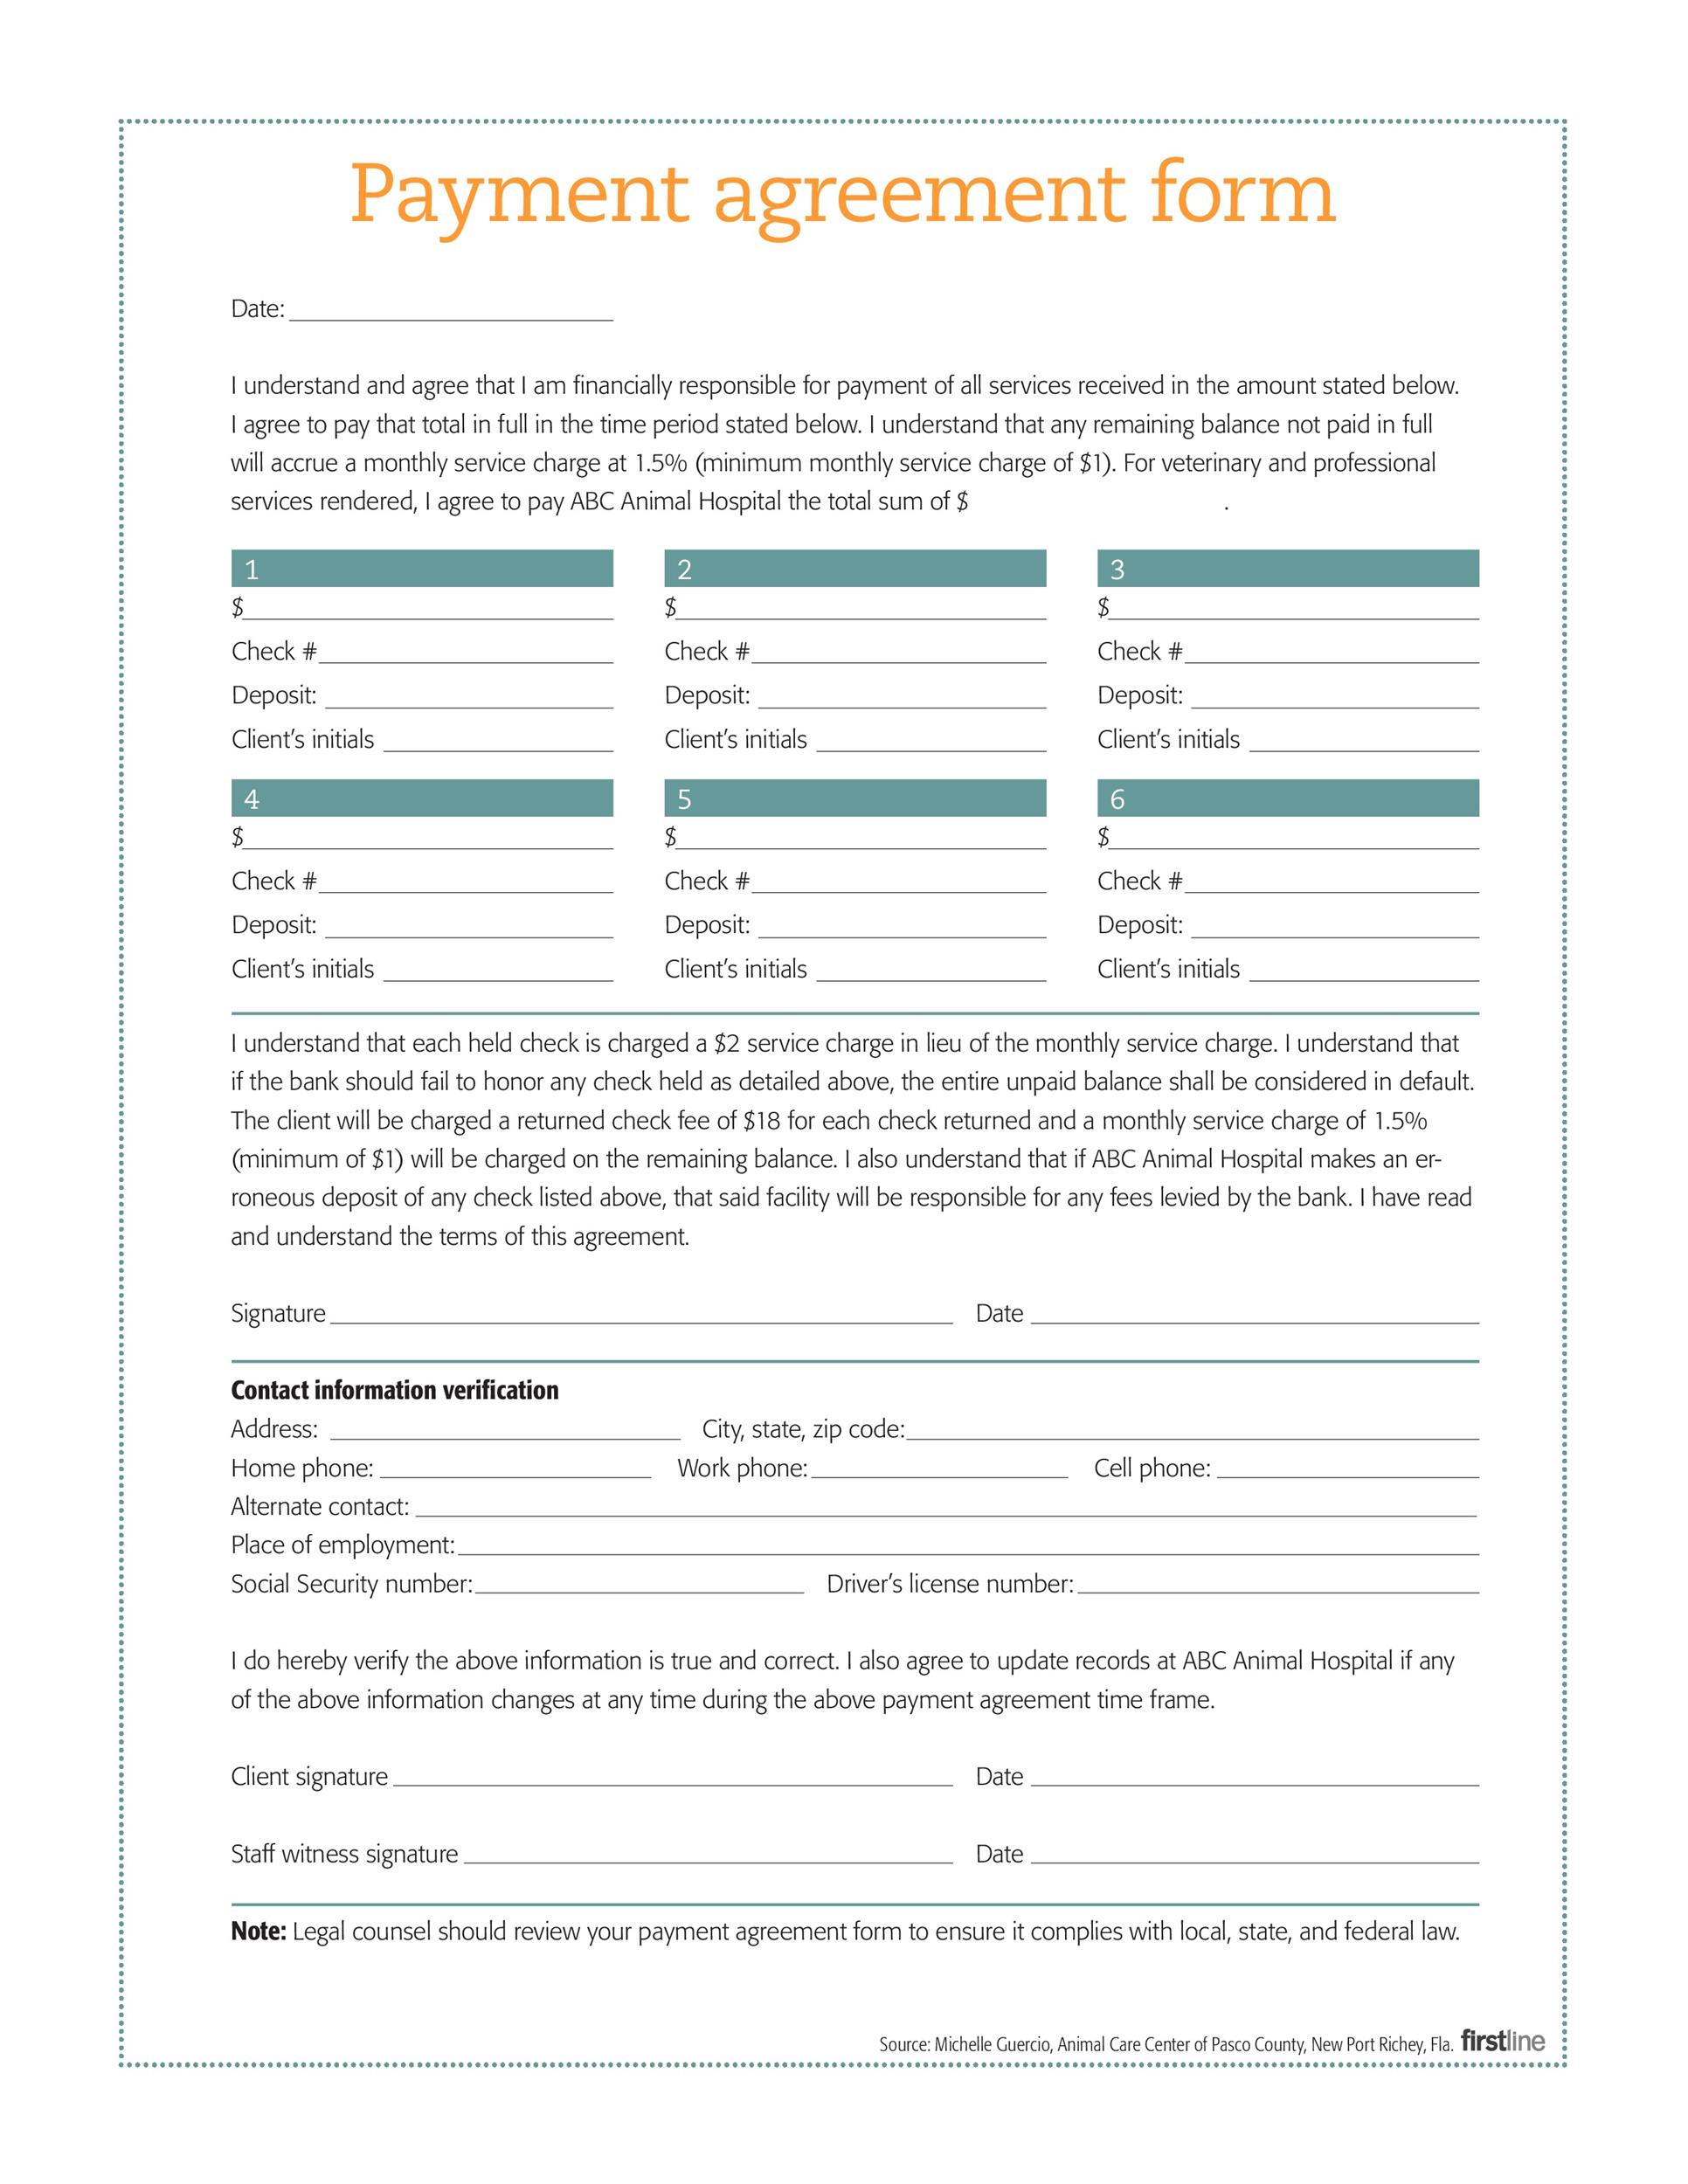 Payment Agreement Templates